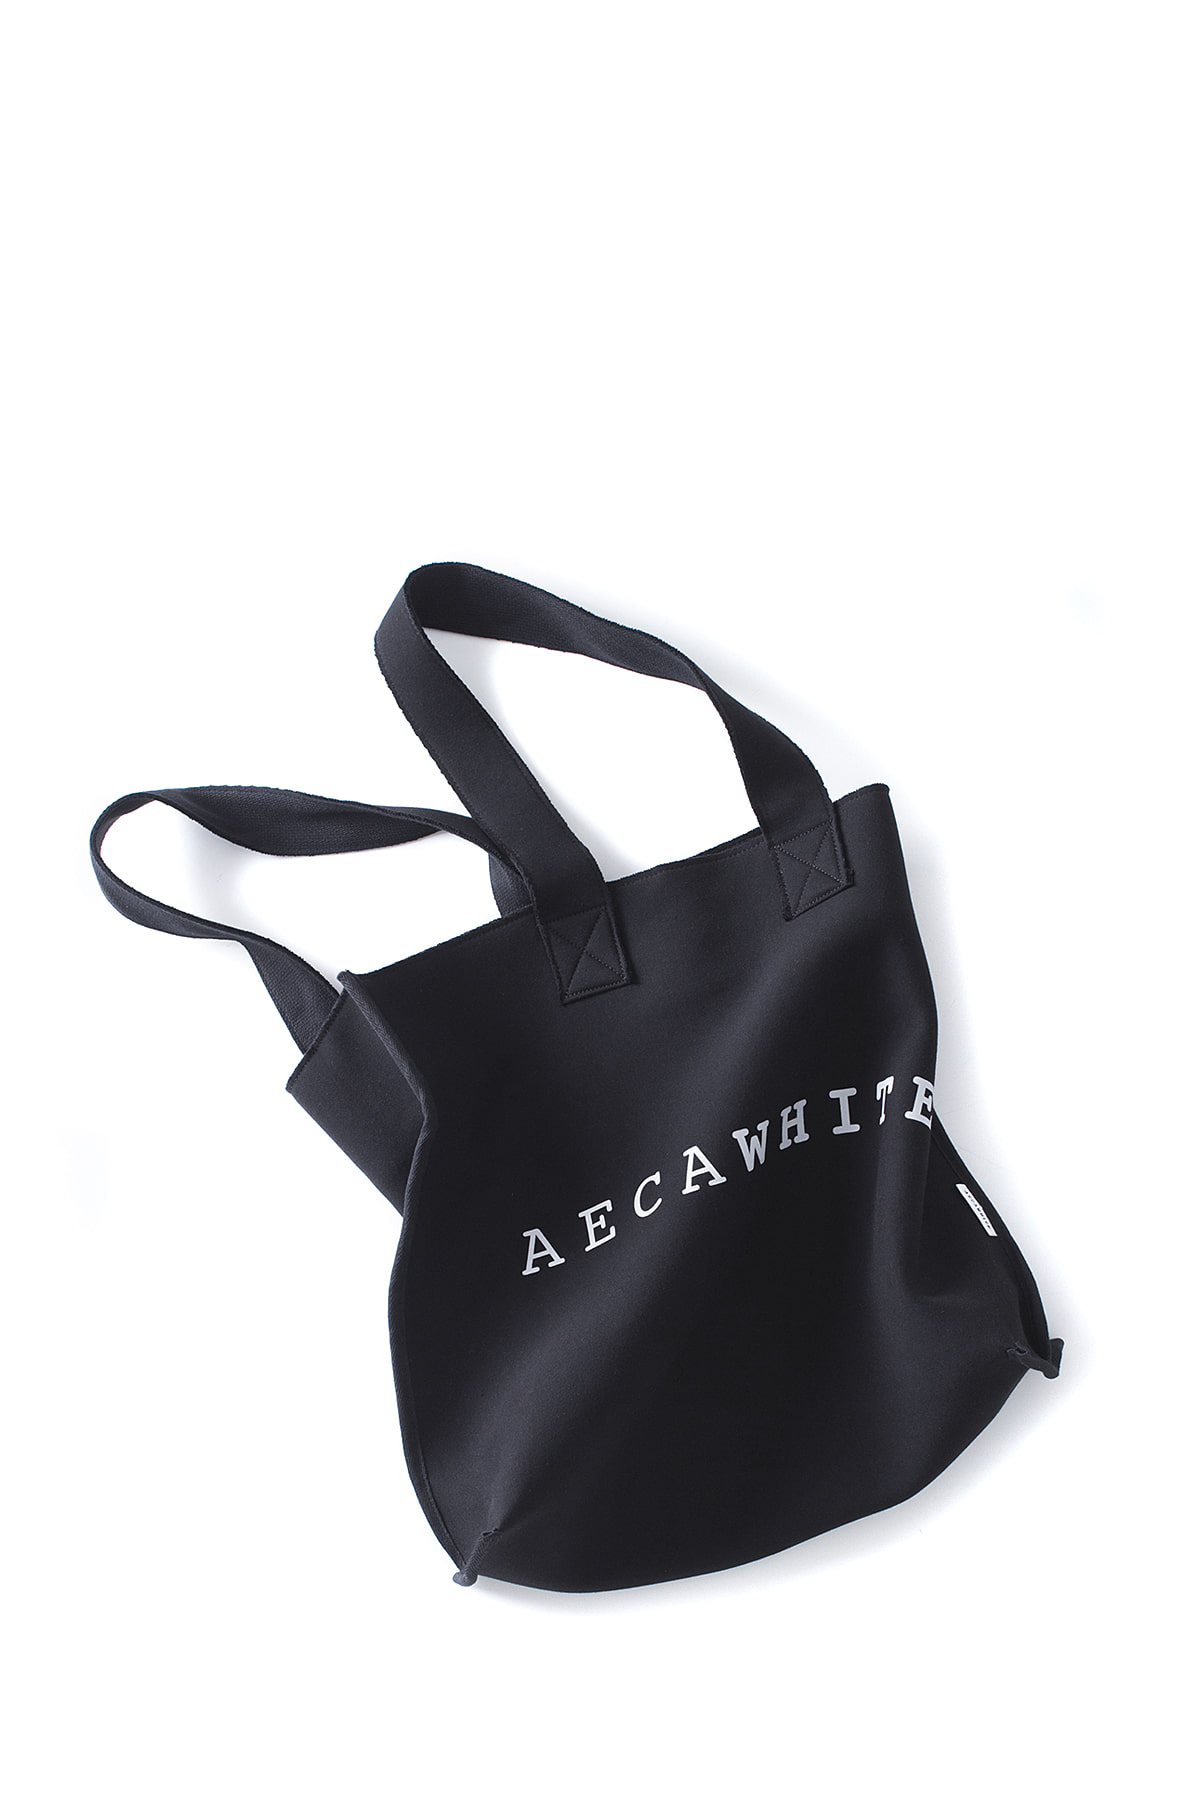 AECA WHITE : Tote Bag (Black)